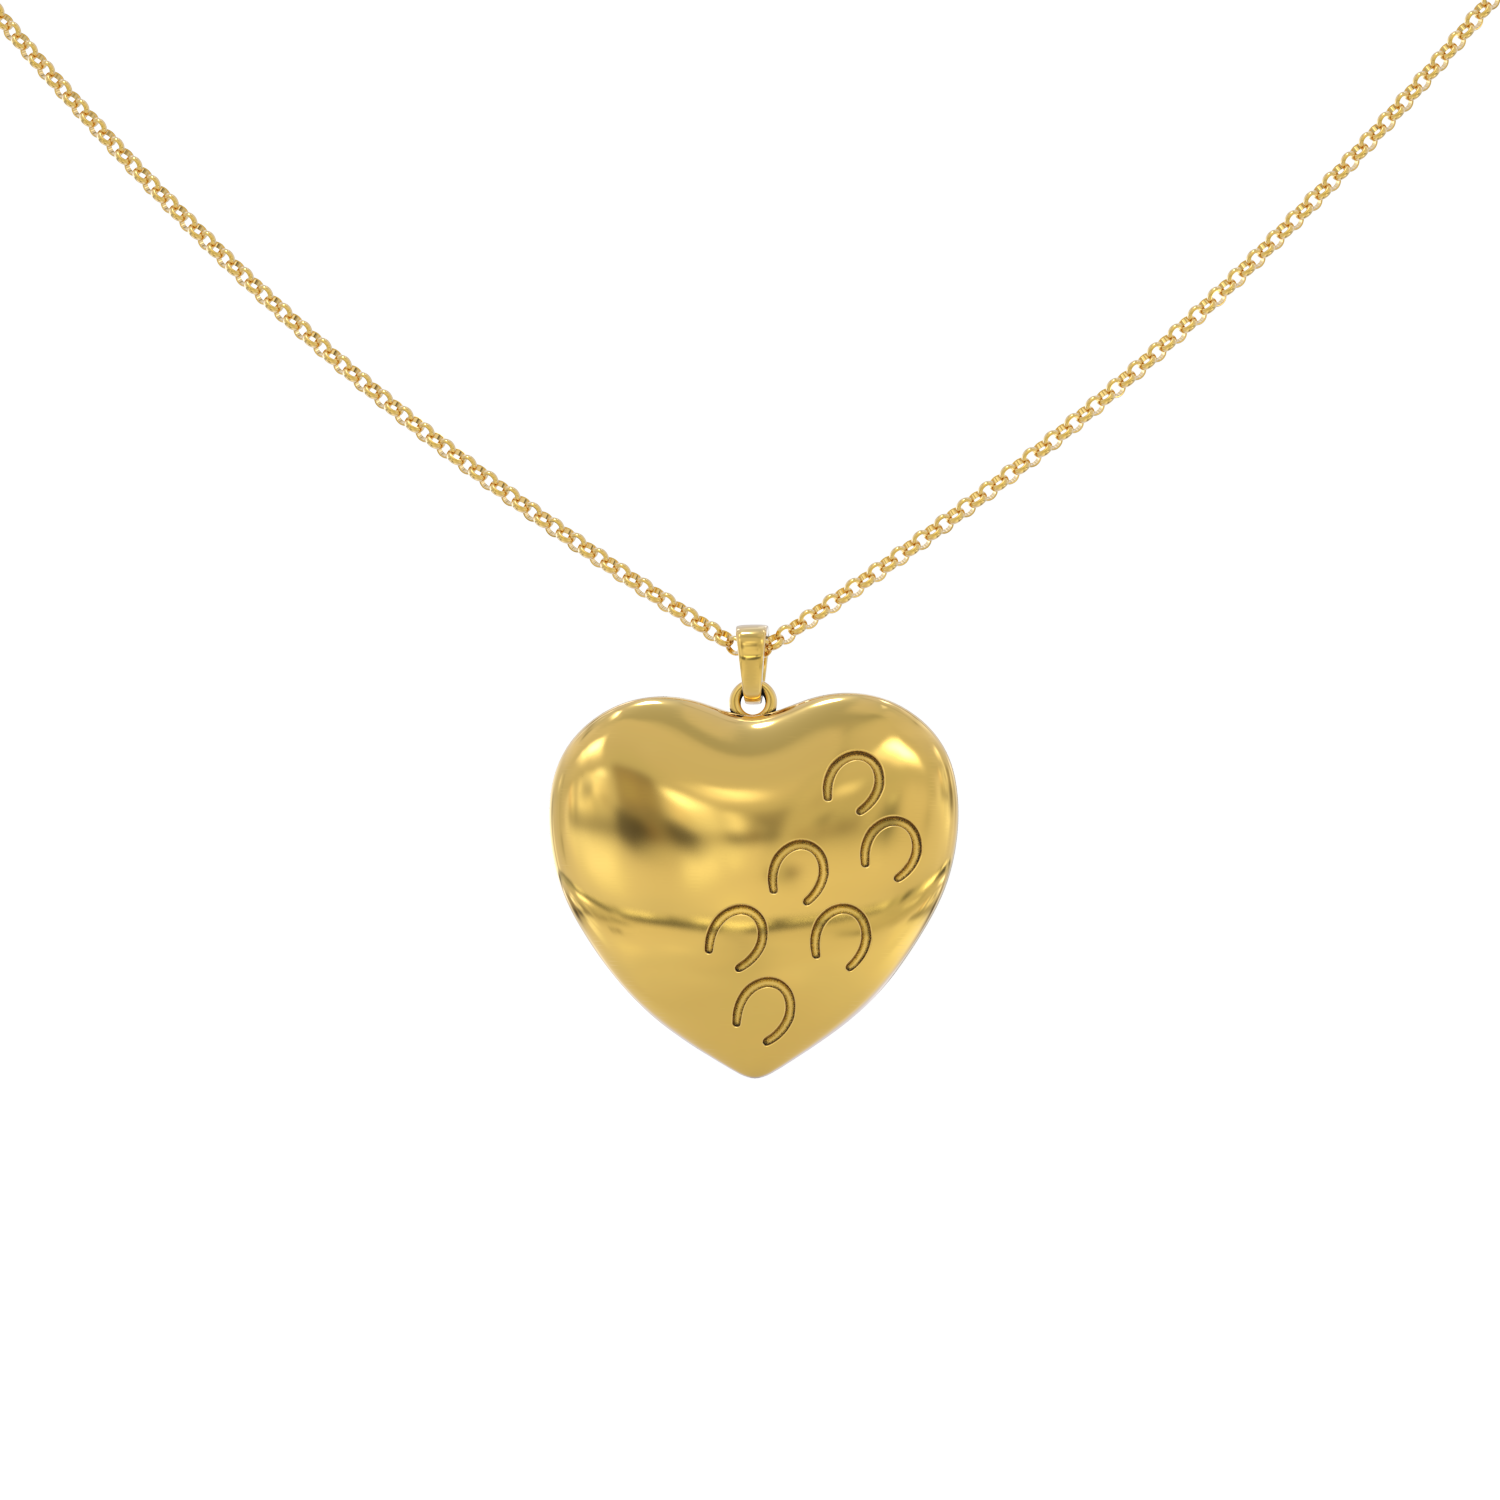 Hoof Prints On My Heart Necklace - LIMITED EDITION